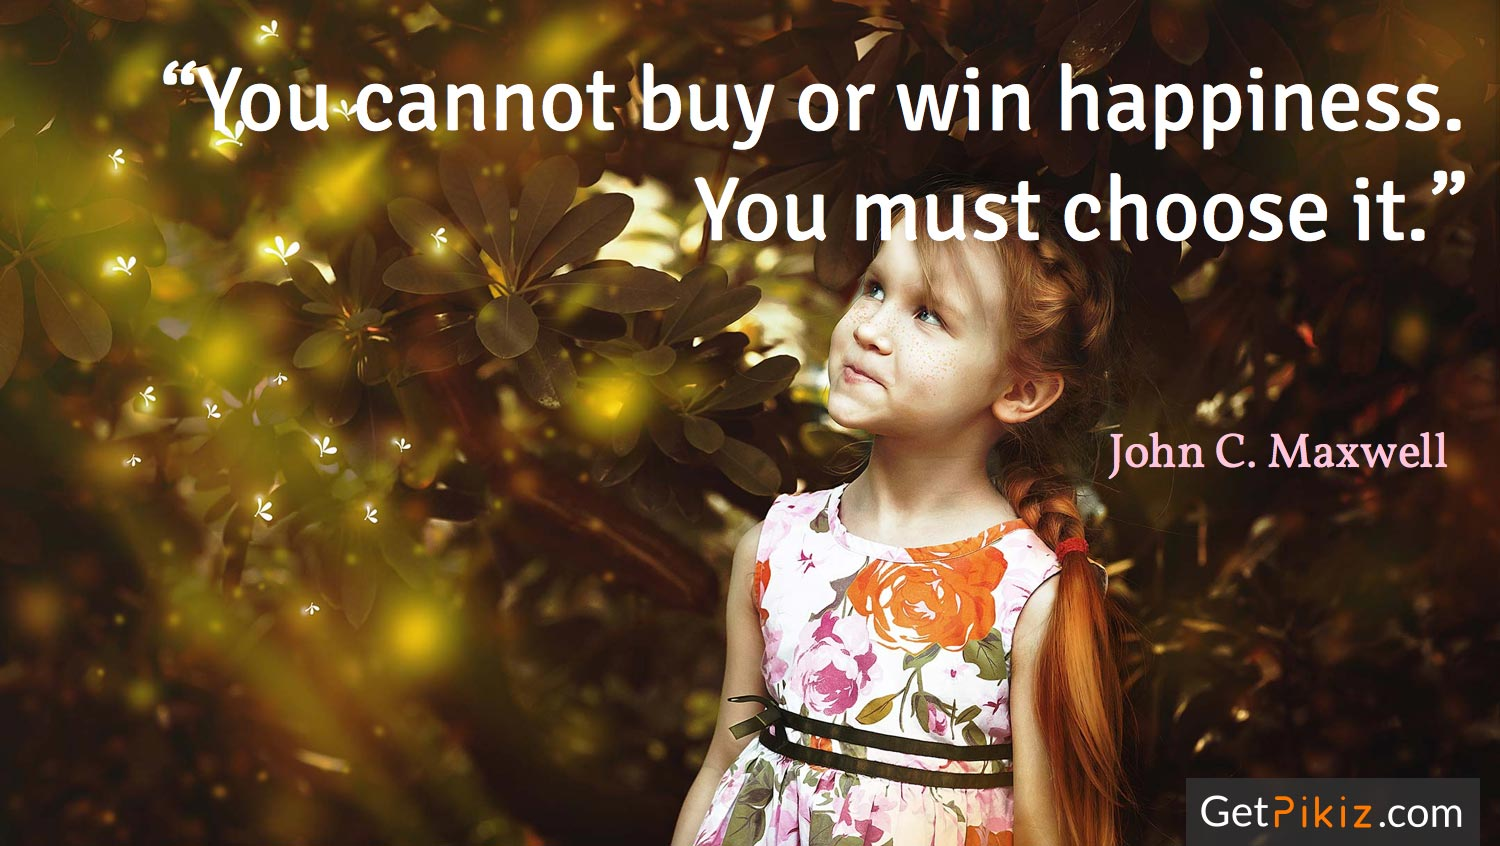 """You cannot buy or win happiness. You must choose it."" – John C. Maxwell"